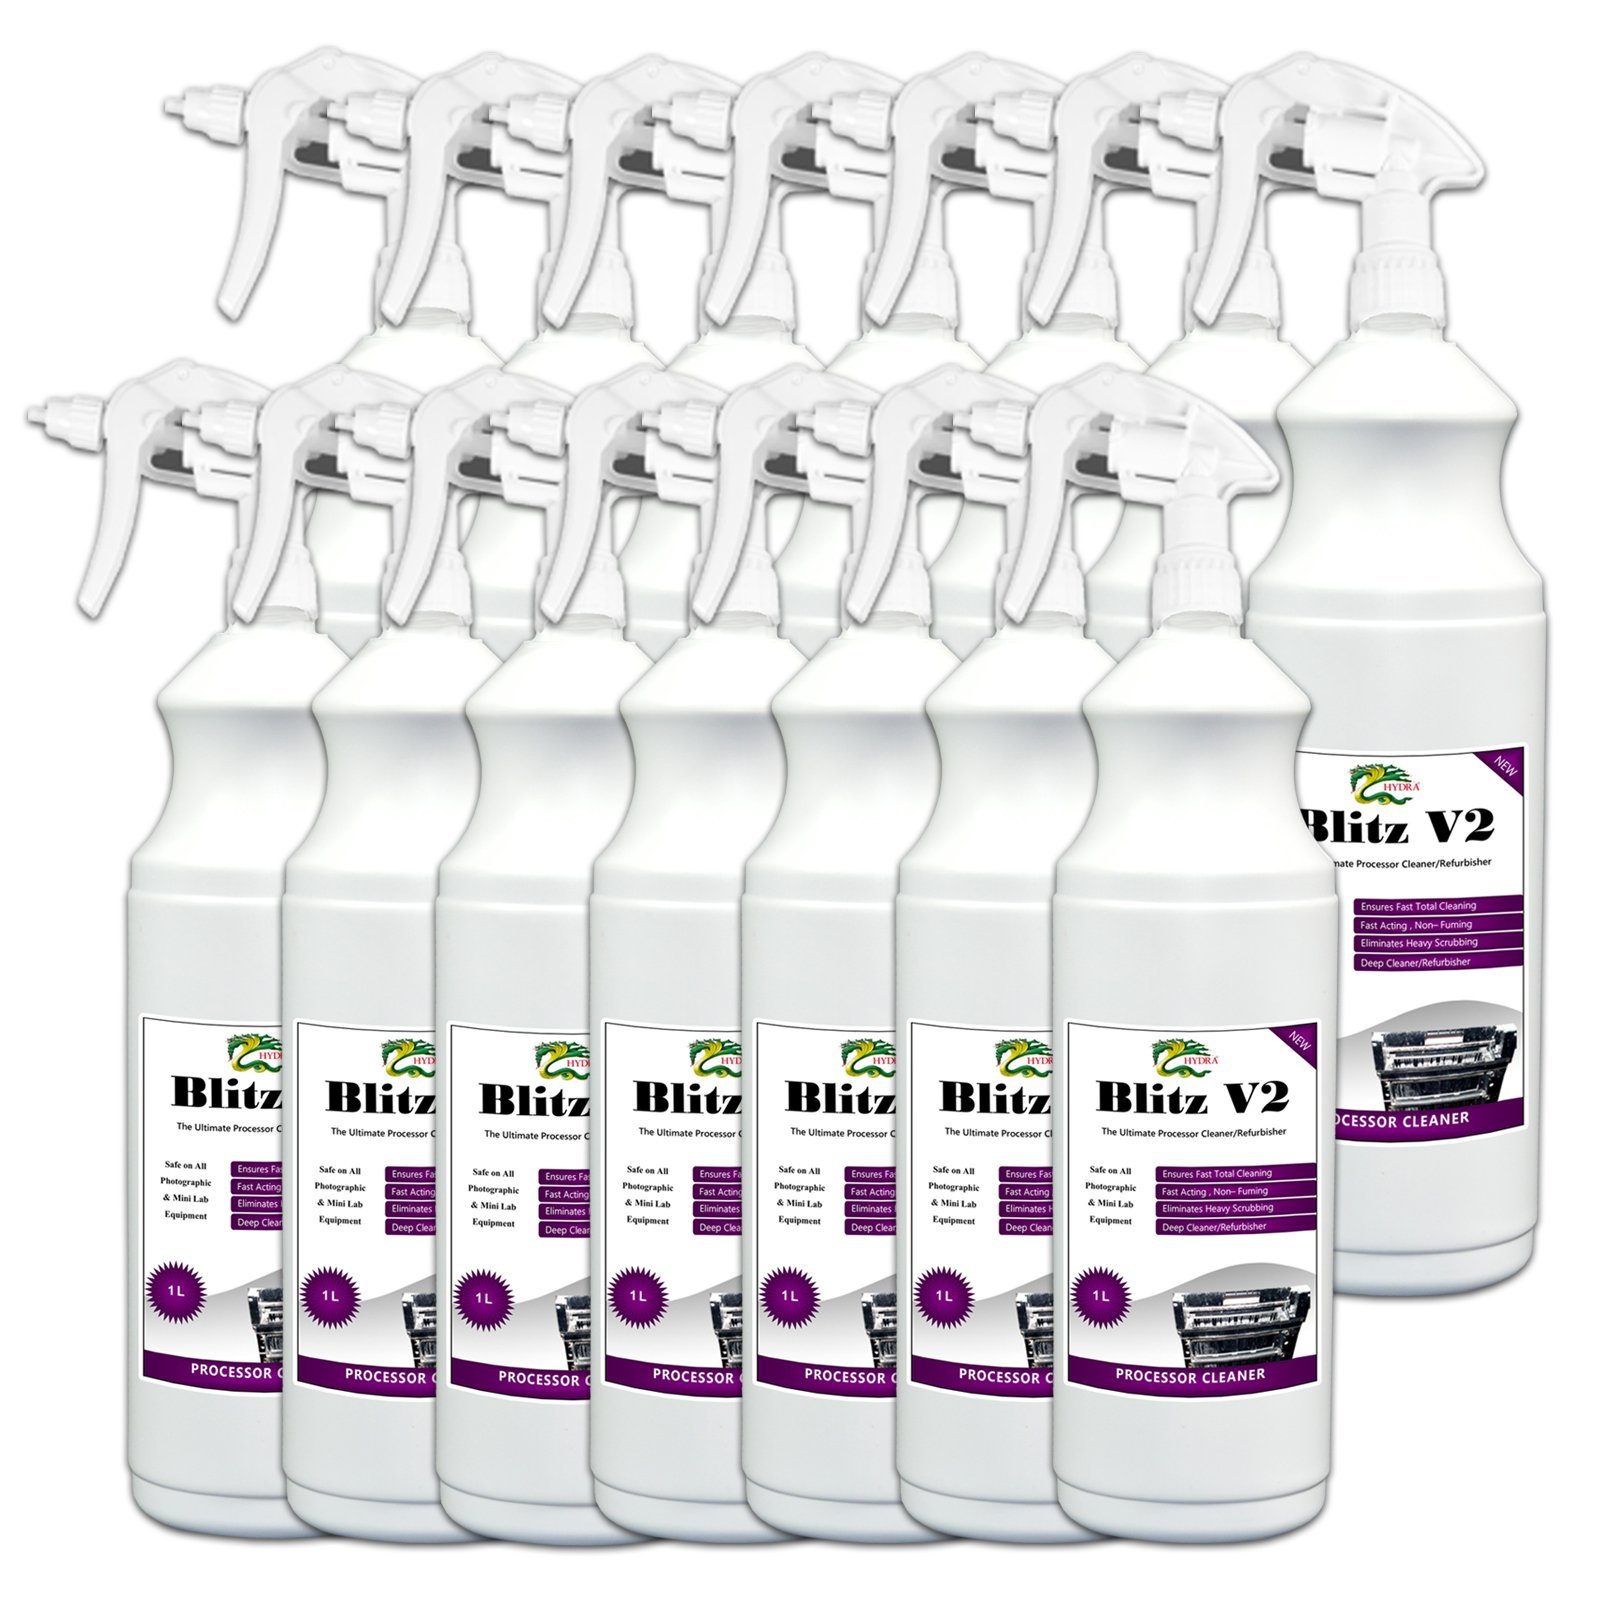 Deep Cleaner and Descaler HYDRA BLITZ V2 - 14x1L Foaming Spot Cleaner For Badly Scaled Racks, Conventional Film, Plate and Paper Processors by HYDRA